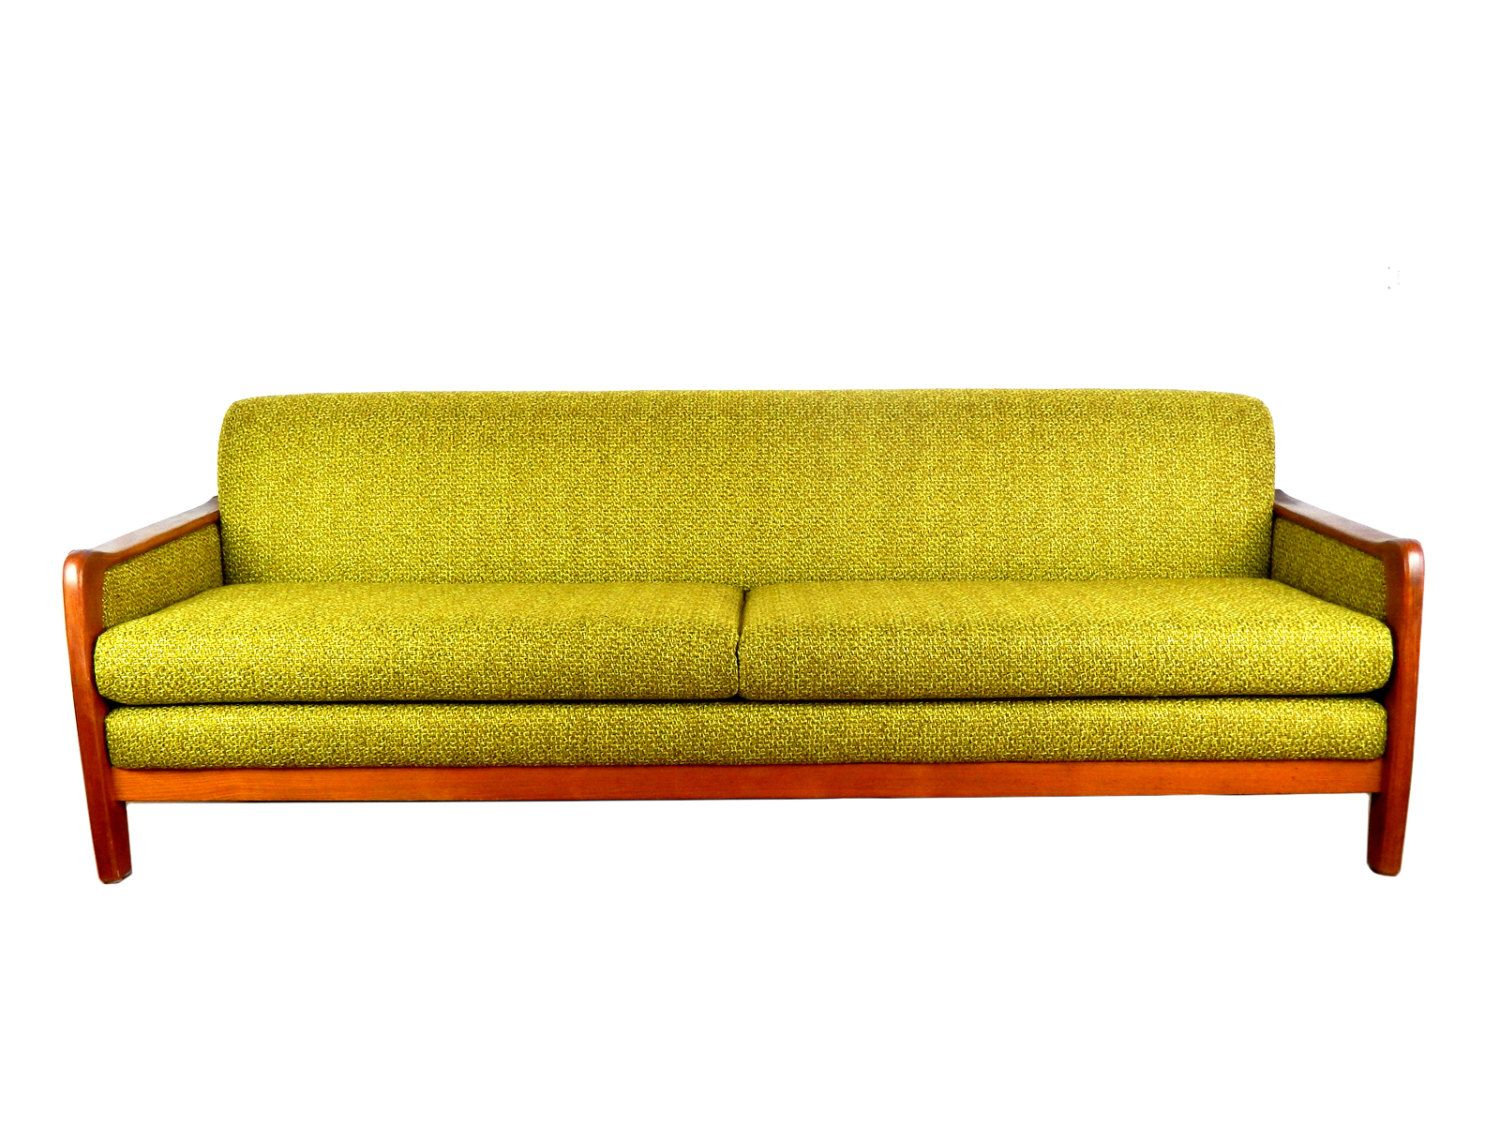 mid century danish modern couch. Danish Modern Green Sofa Couch Long Teak Mid Century 3 Seater Upholstered Scandinavian Decor Furniture By Stonesoupology